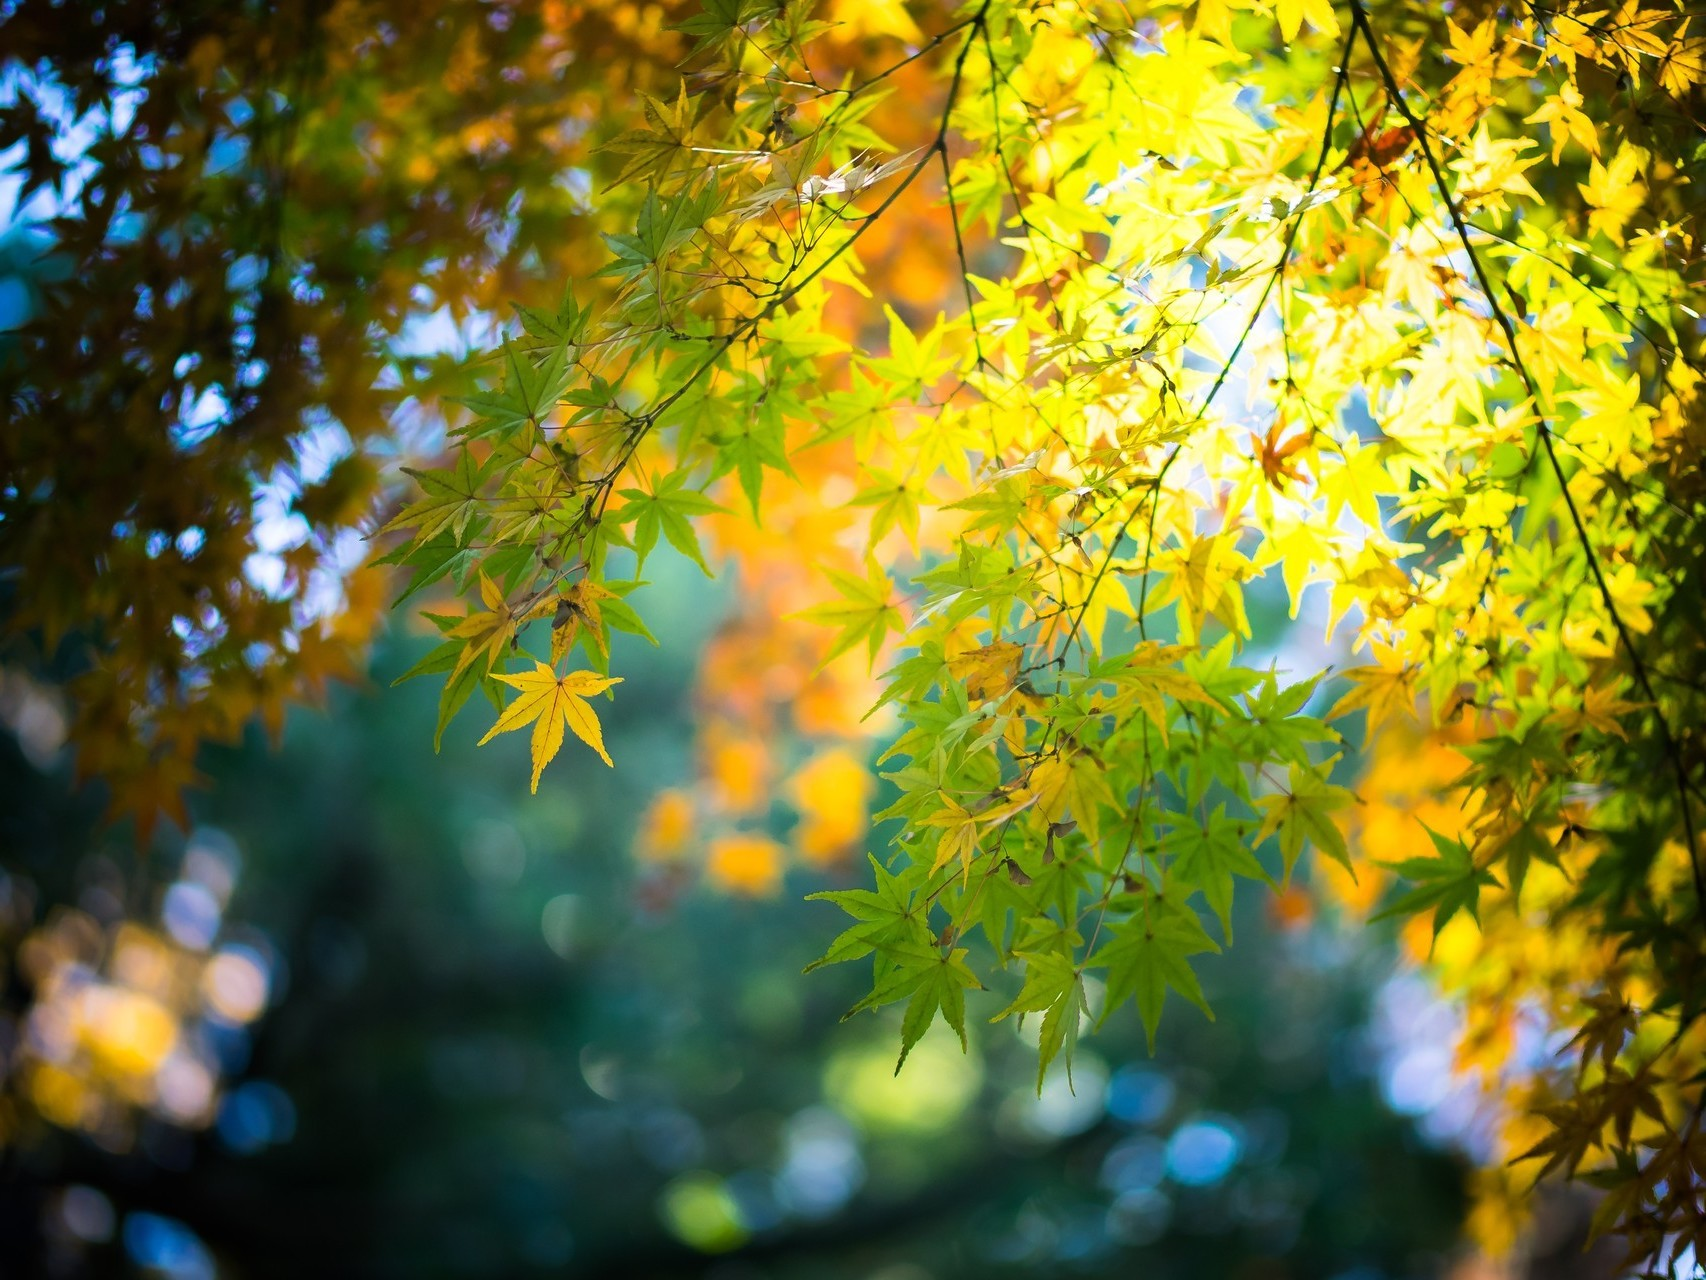 Funny Fall Wallpaper Maple Leaves Fall Bokeh Leaves Nature Wallpapers Hd